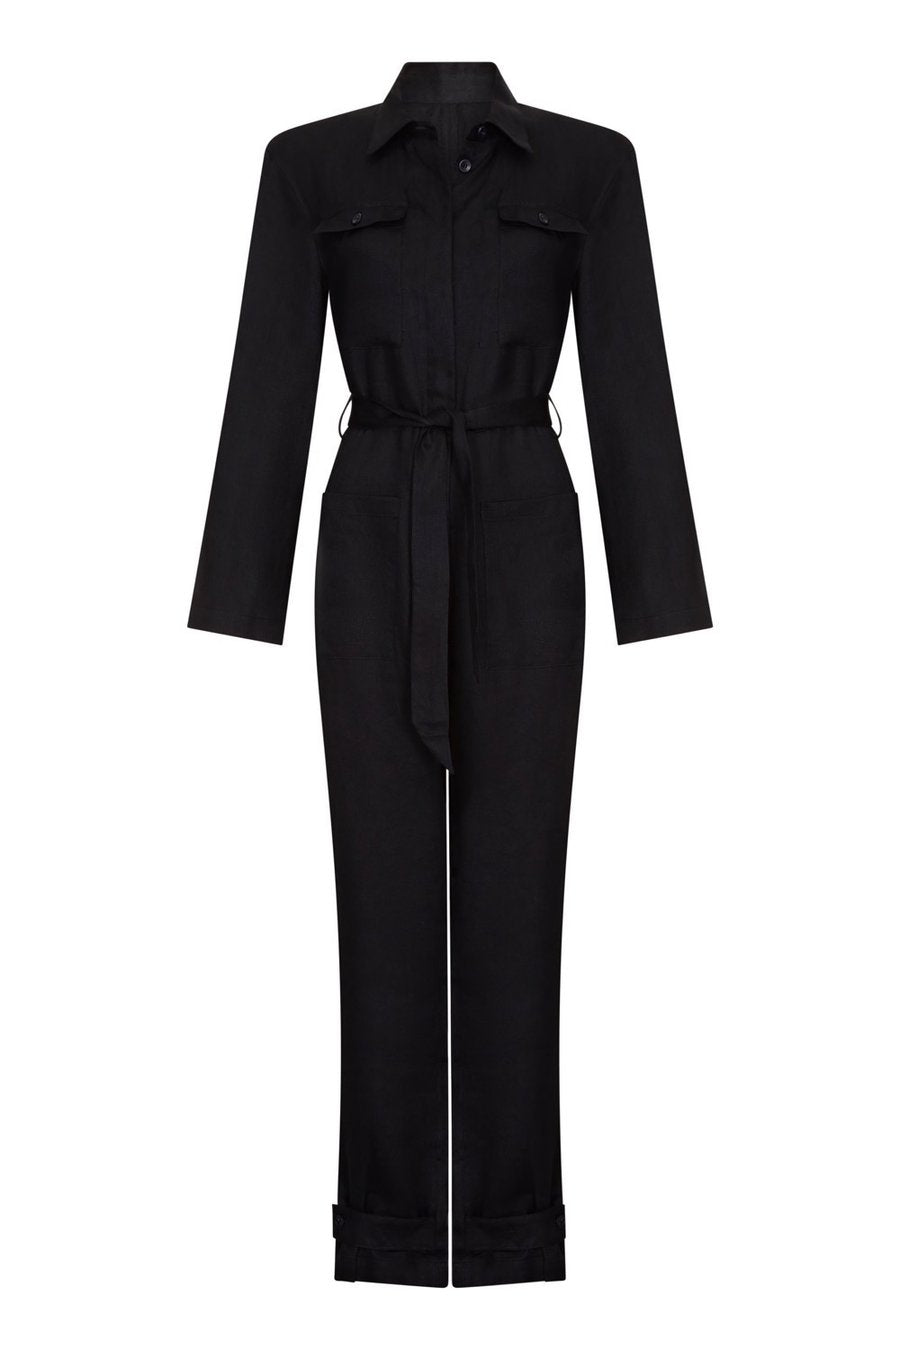 ASCENO ANTWERP BLACK LINEN BOILERSUIT